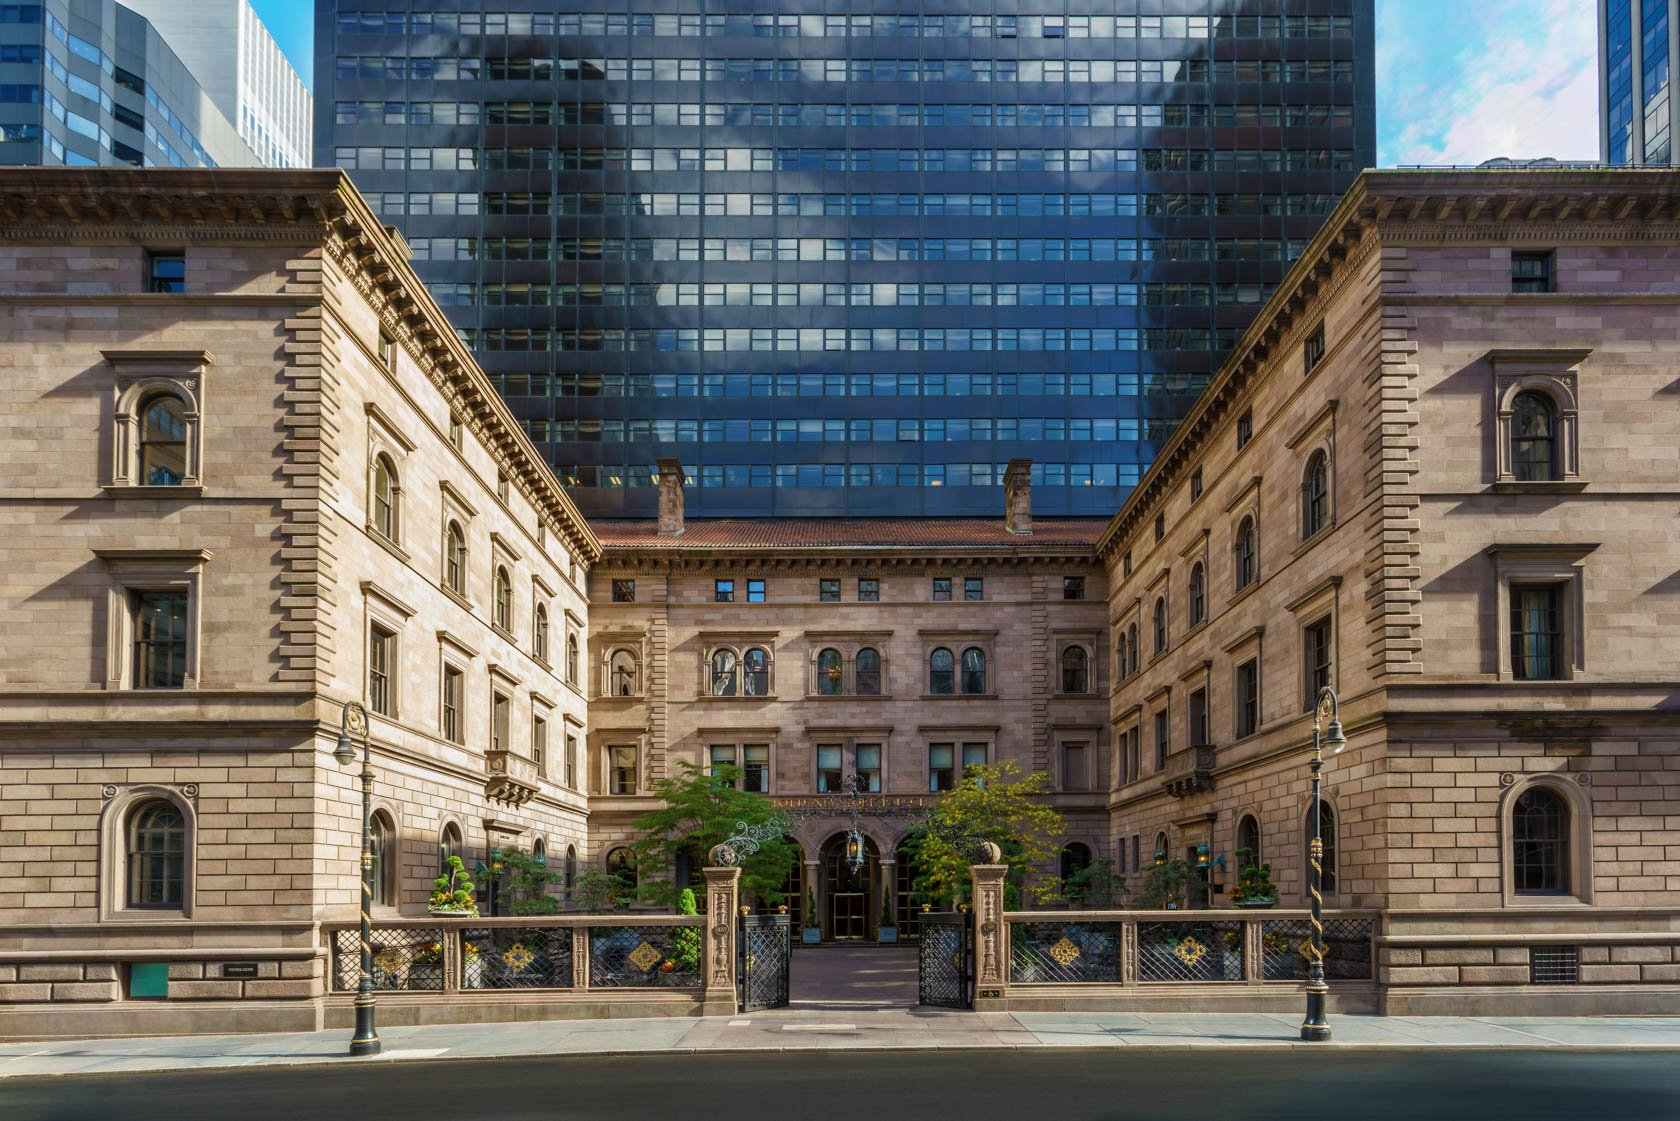 Lotte New York Palace, a Midtown Manhattan luxury hotel